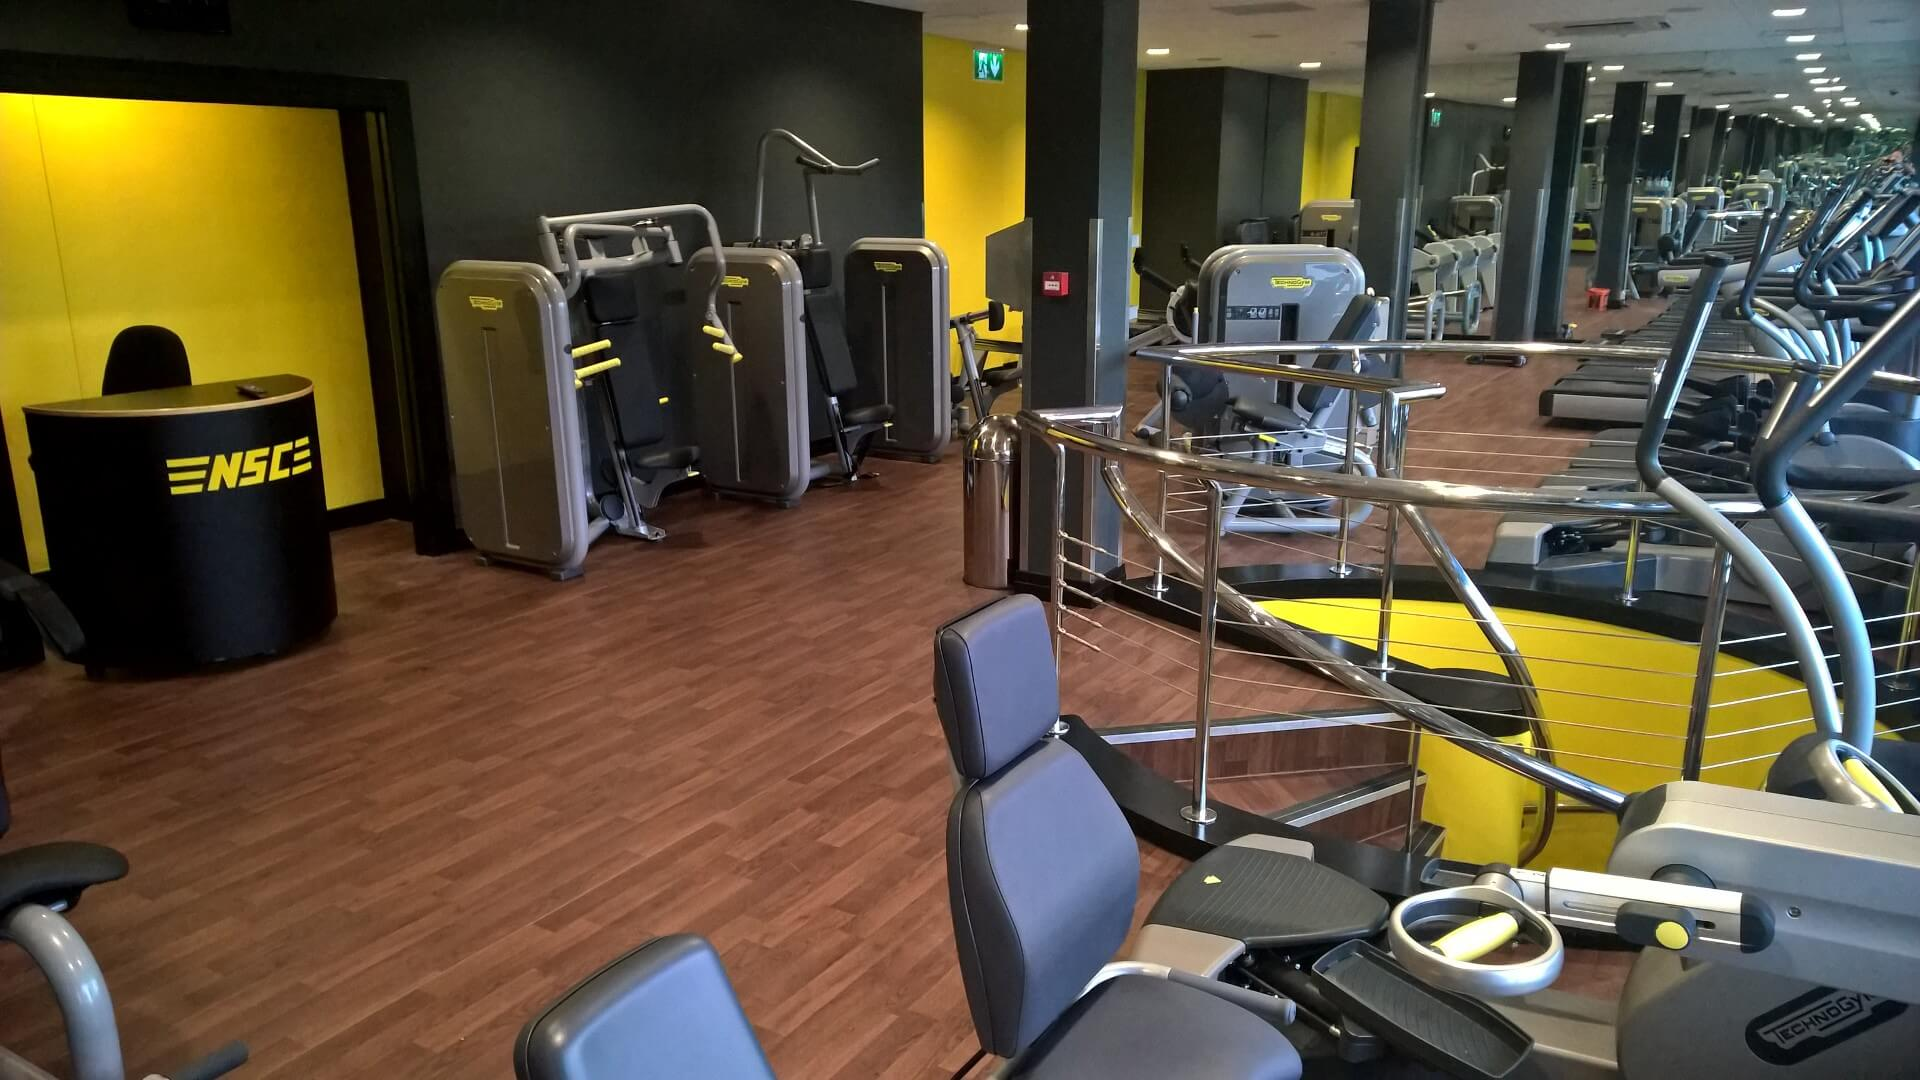 Nsc Gym Fitted Out With Polyflor Safety Flooring Osborn